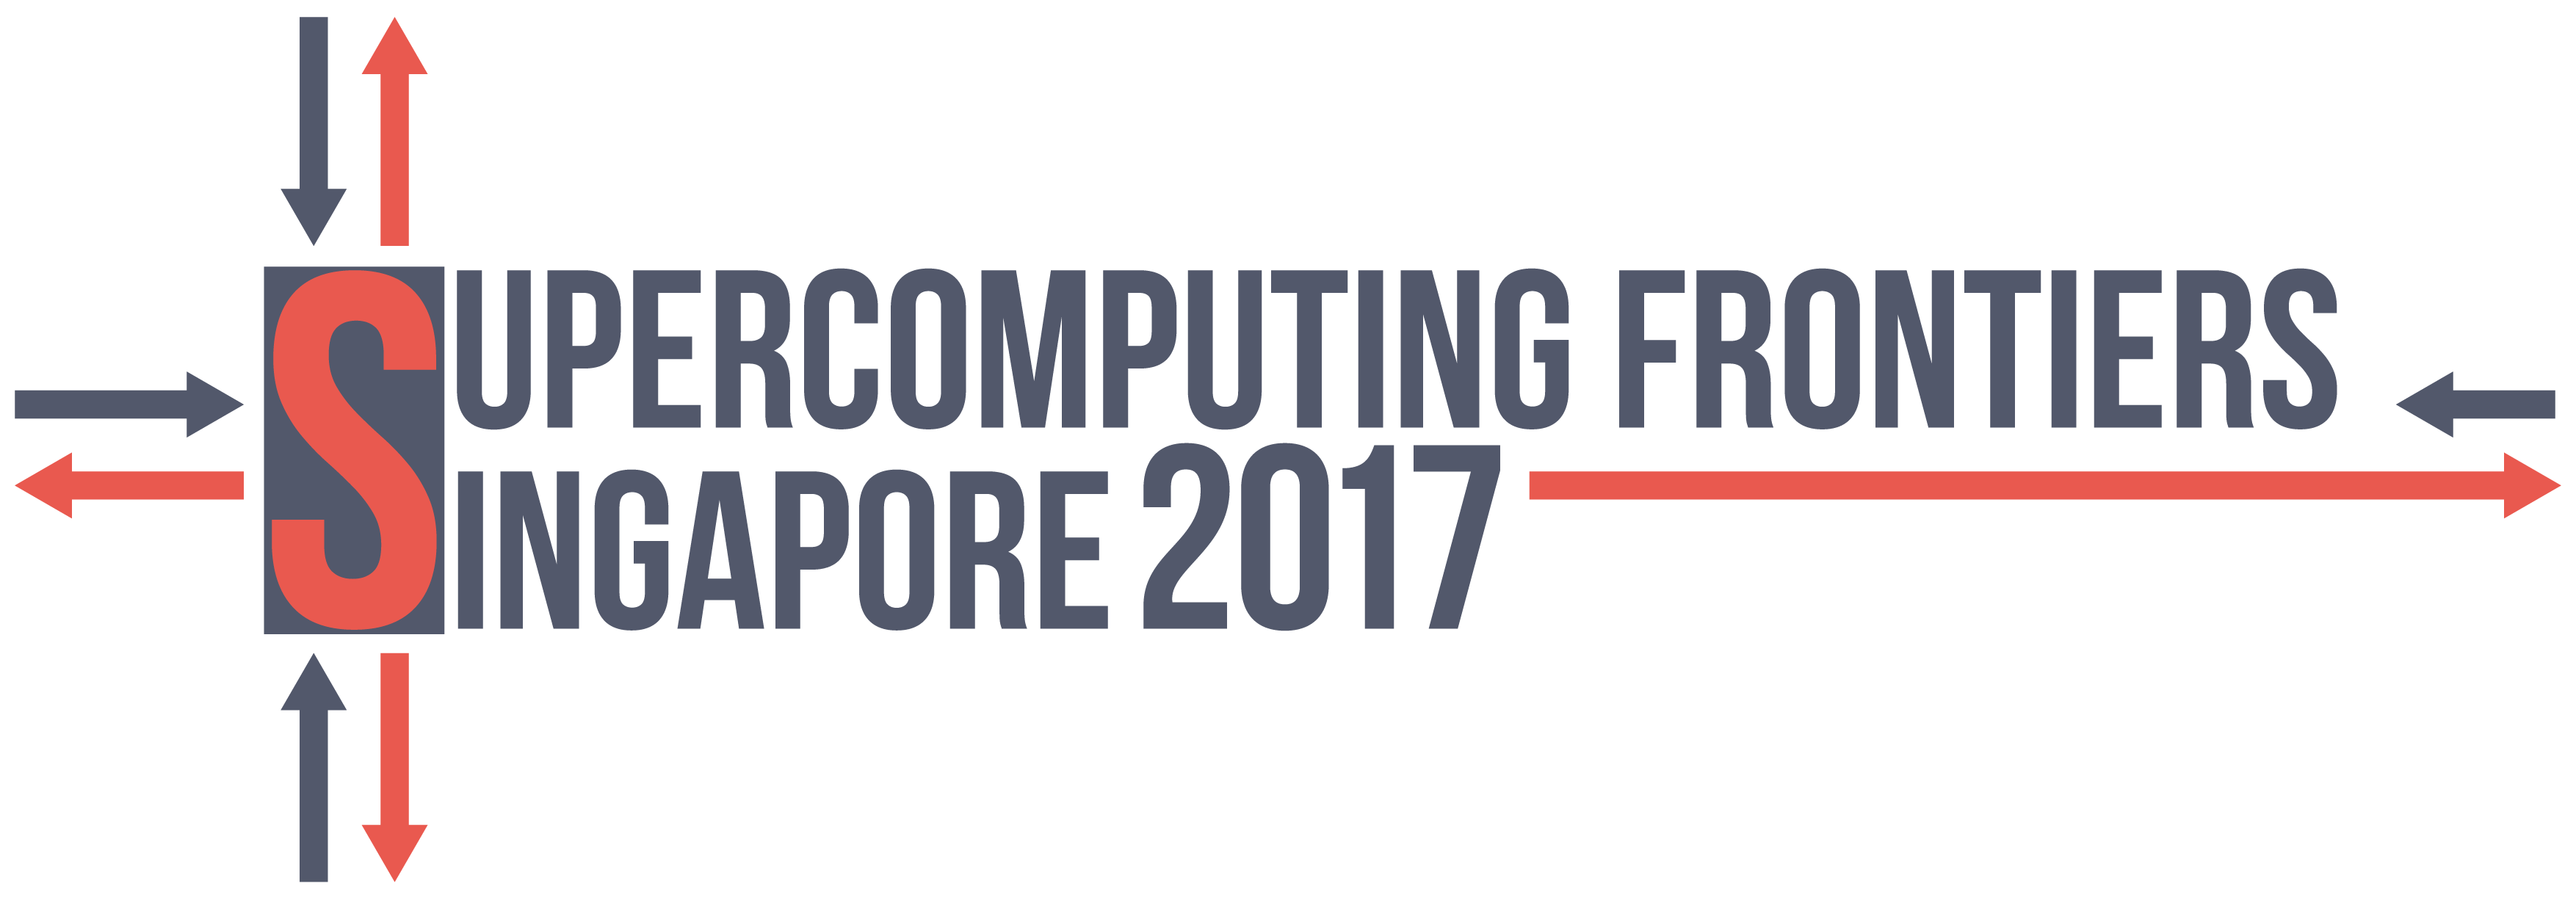 Supercomputing Frontiers 2017